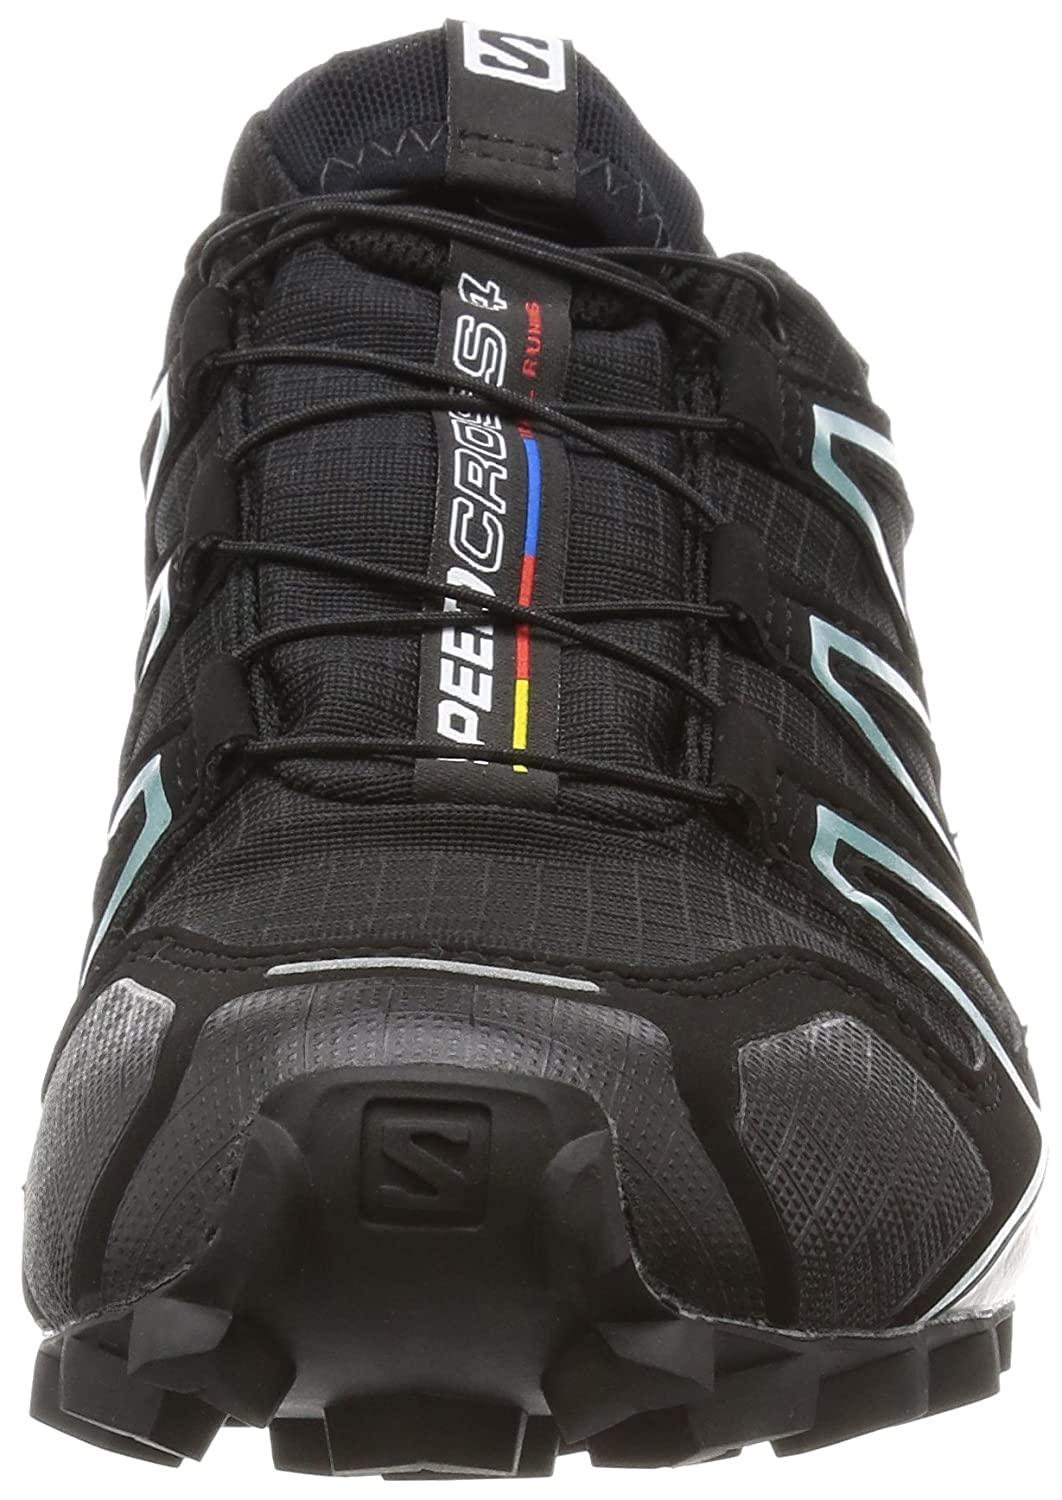 Salomon Women's Speedcross 4 GTX B017SQU6JS W Trail Running Shoe B017SQU6JS GTX 7.5 M US|Black f8da9b